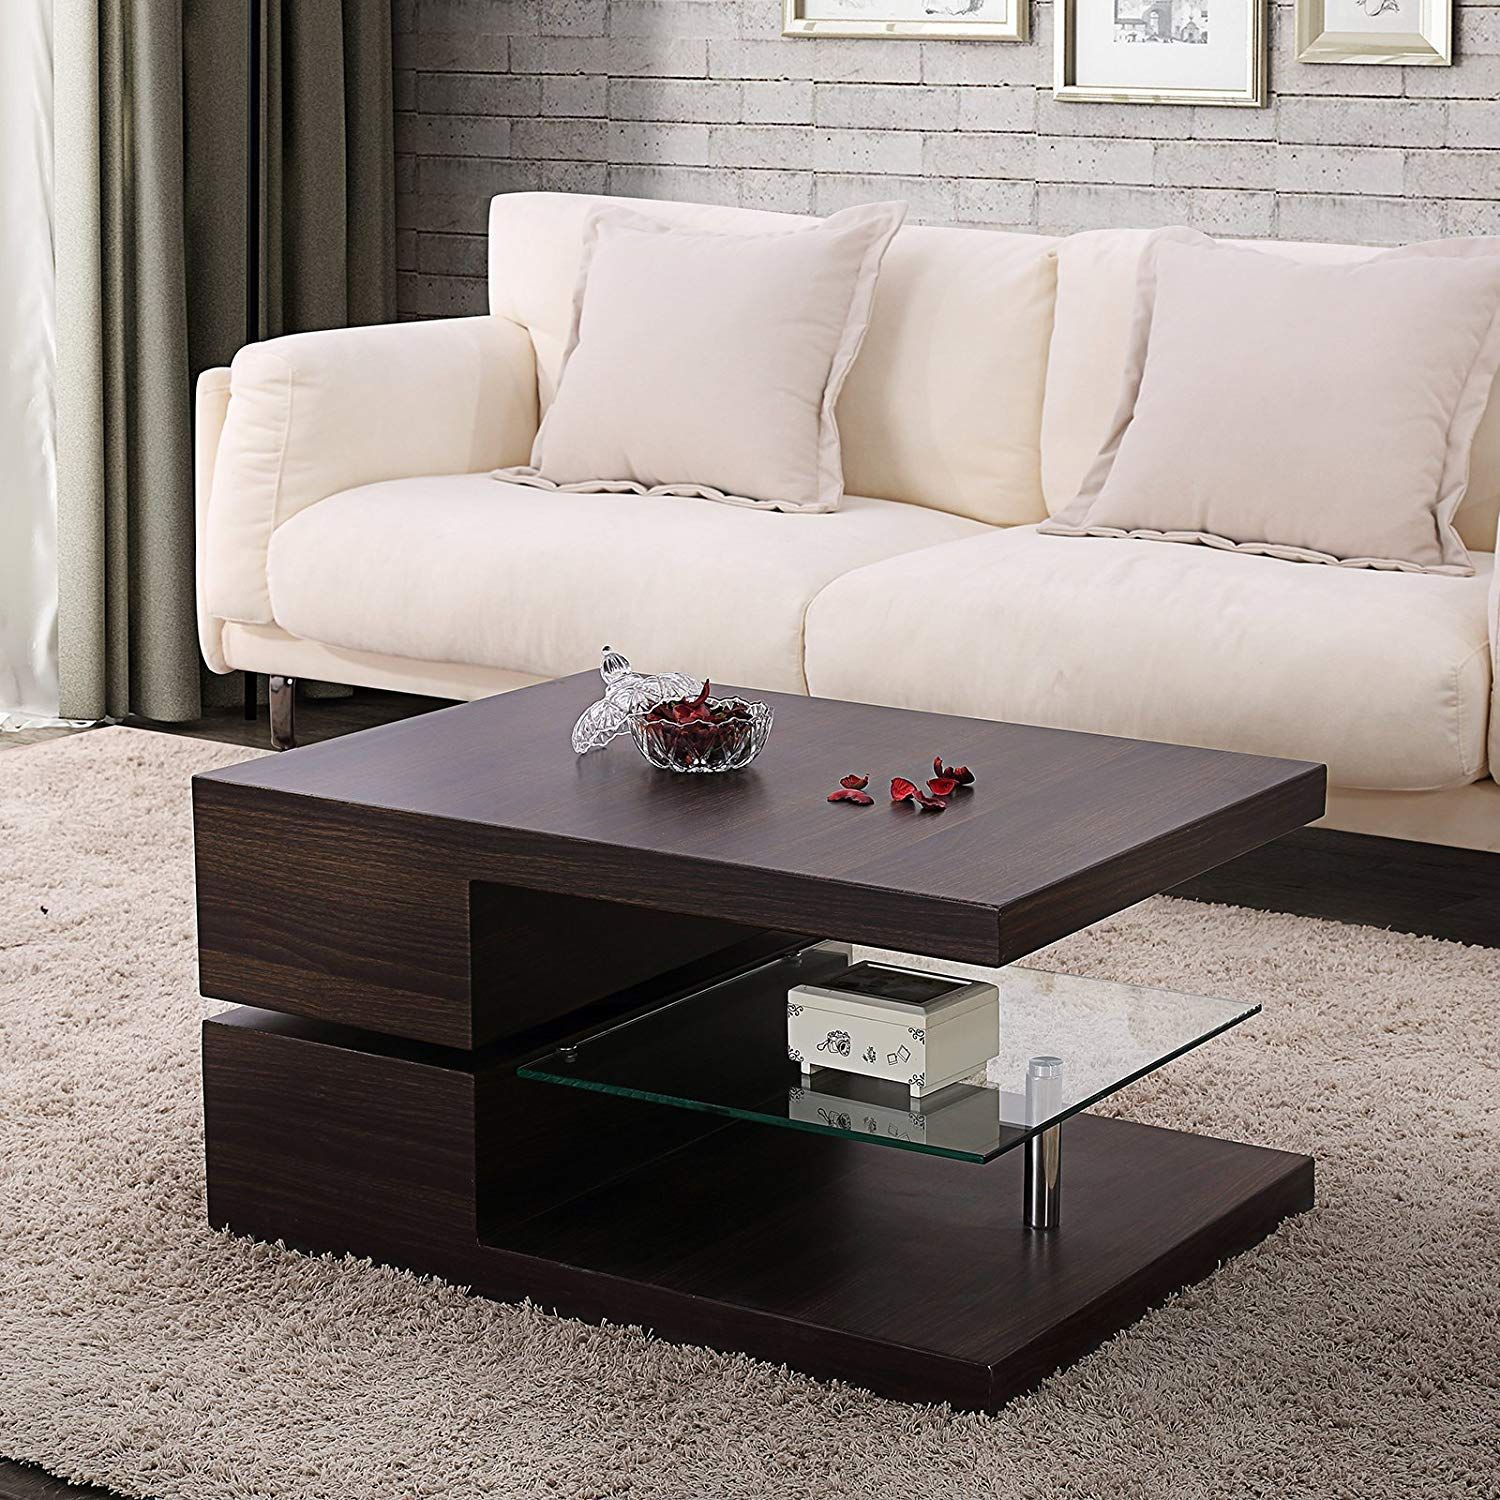 Capllov Swivel Rectangular Coffee Table Modern Side End Sofa Table With 360 Degree Rotating Living Room Coffee Table Coffee Table Living Room Furniture Online [ 1500 x 1500 Pixel ]